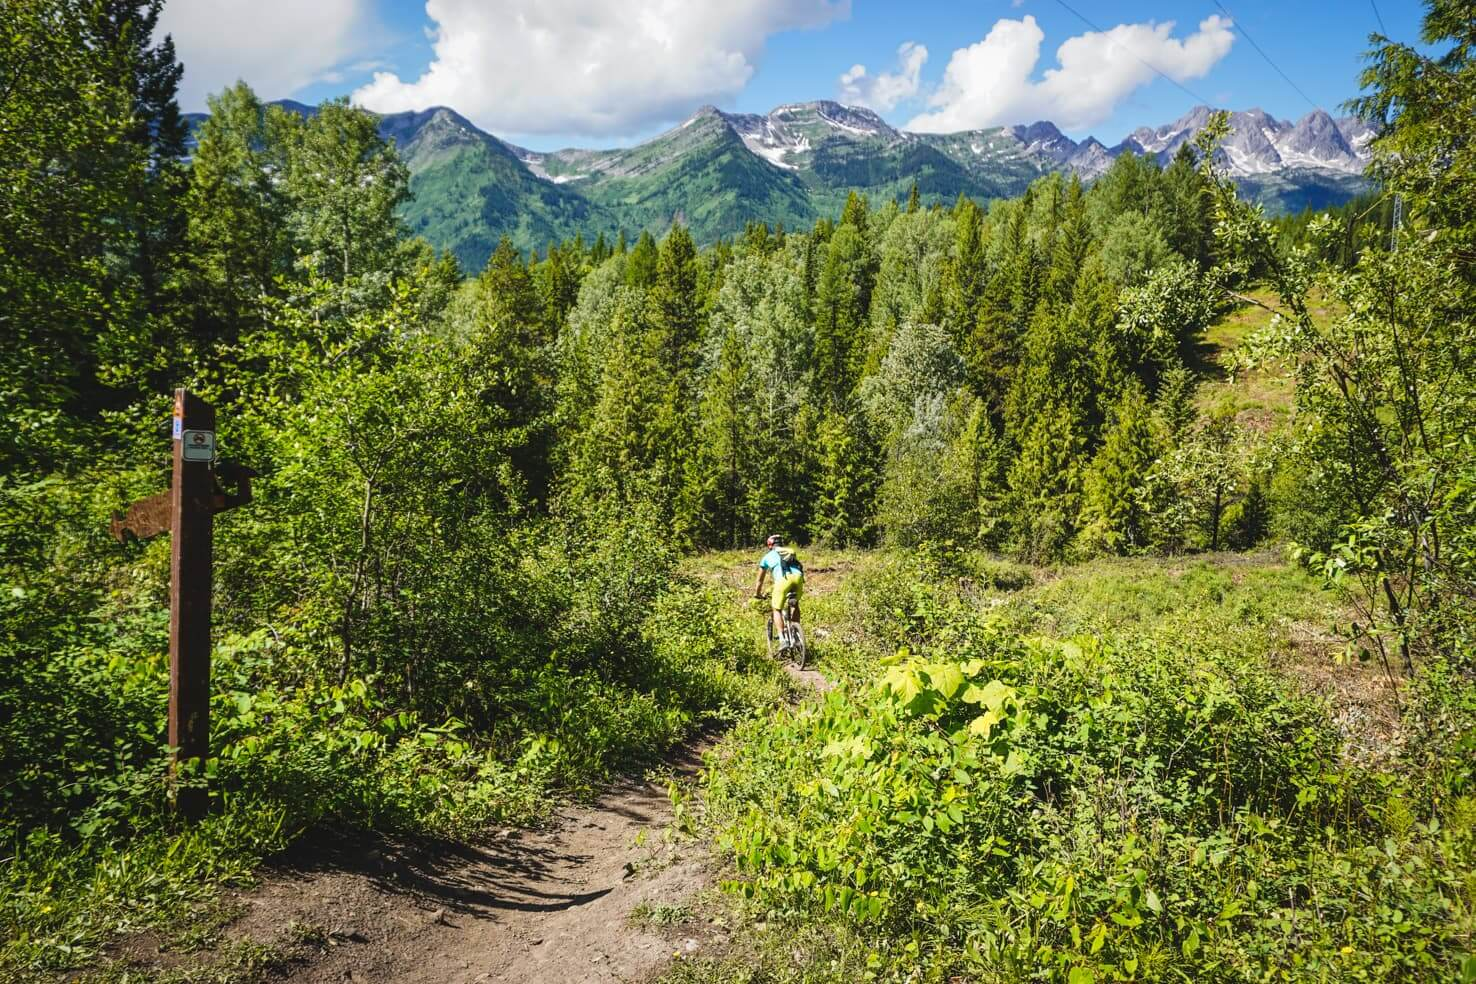 Things to do in Fernie, BC - 13 Mountain bike at Mount Fernie area-2